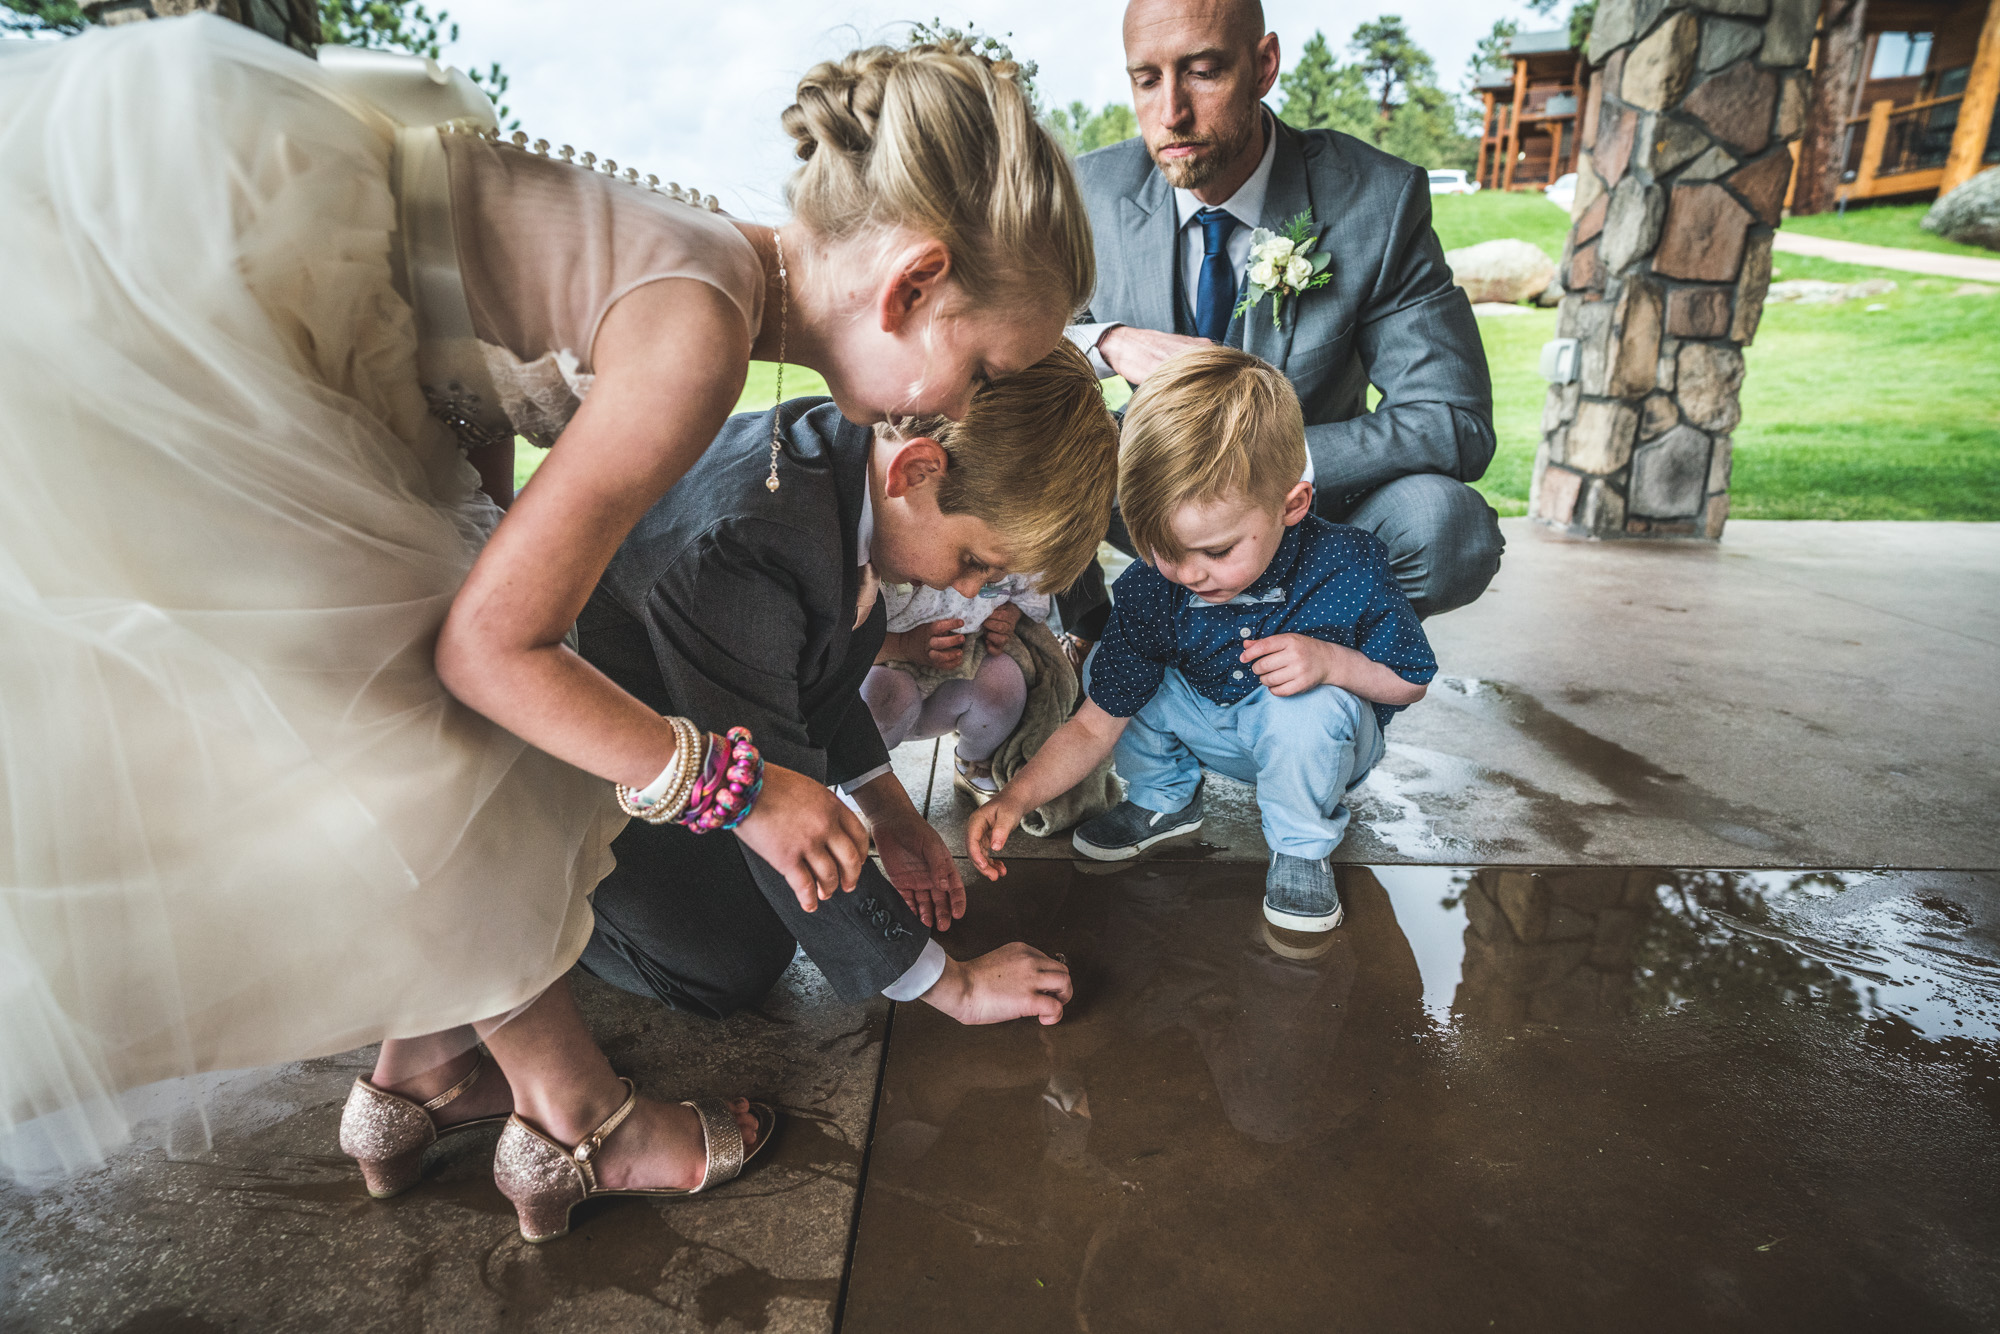 Color image taken during a wedding at the Black Canyon Inn in Estes Park, Colorado. Four kids in formal clothing bend down and look at something on the ground as the groom looks on in the background.